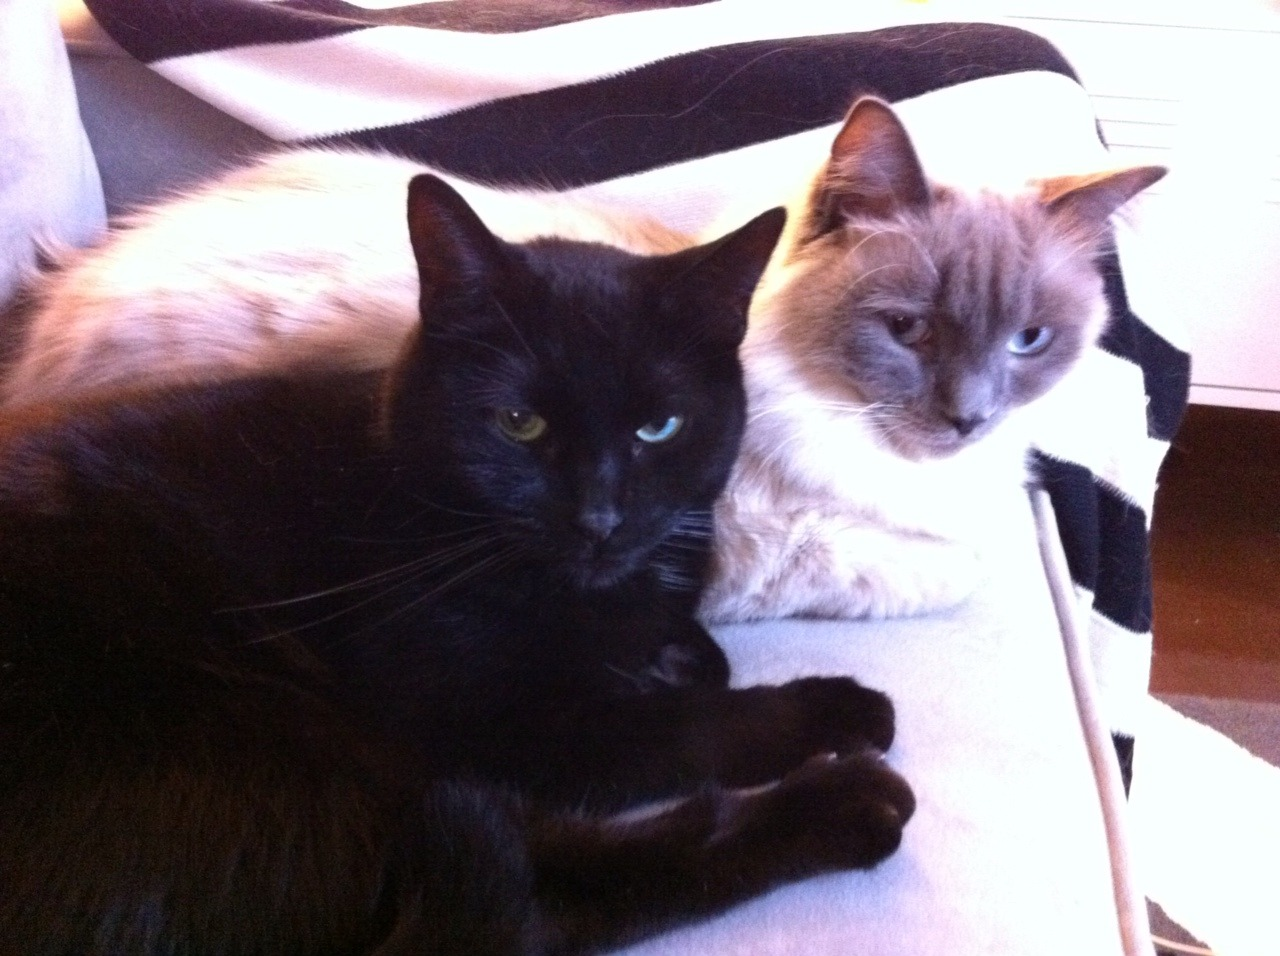 Because every blog should begin with a cat photo. These are my boys, Bonk and Moose. Moose (the white one) is a purebred Ragdoll I adopted as a kitten about three years ago. He's very friendly, curious and playful but not particularly cuddly—great with new people and animals but not much of a lap cat. He's also the dumbest cat I've ever had, which provides constant amusement. I can't remember exactly how he got his name; I think it was just a temporary name that stuck. But nowadays he's the perfect embodiment of a Big Moosie. I adopted Bonk about a year ago from an Atlanta-based network of no-kill shelters named Furkids. They do amazing work, taking in all cats—young, old, sick, healthy—and providing them excellent care until they're adopted or peacefully live out their lives. I spent several hours at Furkids over two visits trying to find a good companion for Moose, wandering through the rooms of their main adoption center which houses dozens and dozens of cats. There were cats more beautiful, young and outgoing than Bonk (original name: Peter Piper), but something about him resonated with me. Whenever I would go into his room the more social cats would jostle and fight for my attention but Bonk would calmly walk over, climb into my lap and stare up at me. He was about four years old at that point and had lived his entire life at the shelter. Even now, over a year later, his personality is still unfurling a little more each day. He's very timid, abnormally smart, incredibly affectionate and cuddly with me, and rarely makes a sound. He also has a habit of headbutting things when he's happy which is how he got his name. Moose is the cat that my houseguests flock to because he's so social and beautiful (and because Bonk hides under the bed whenever someone comes over), but it's Bonk that curls up against my hip whenever I'm on the couch and in the crook of my arm when I stretch out in bed every night. The two of them are best friends and almost complete opposites and I couldn't imagine my life without them.